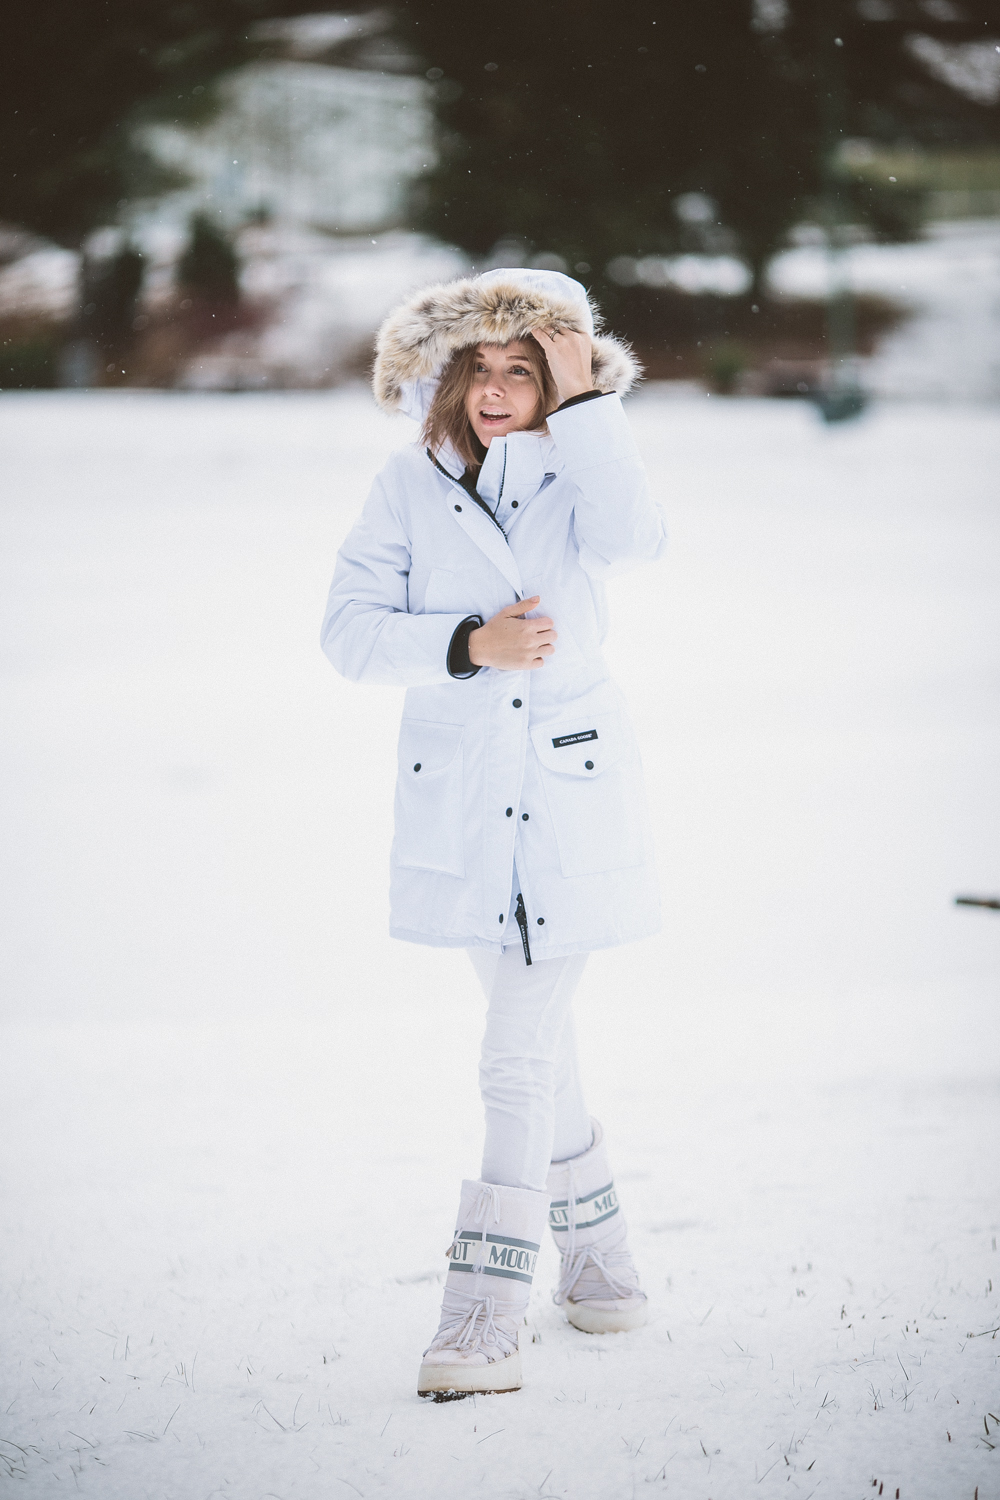 darya kamalova thecablook fashion lifestyle blogger from thecablook com in the mountains wearing moonboots and canada goose trillium white downcoat and asos jeans in italy under the snow-9167